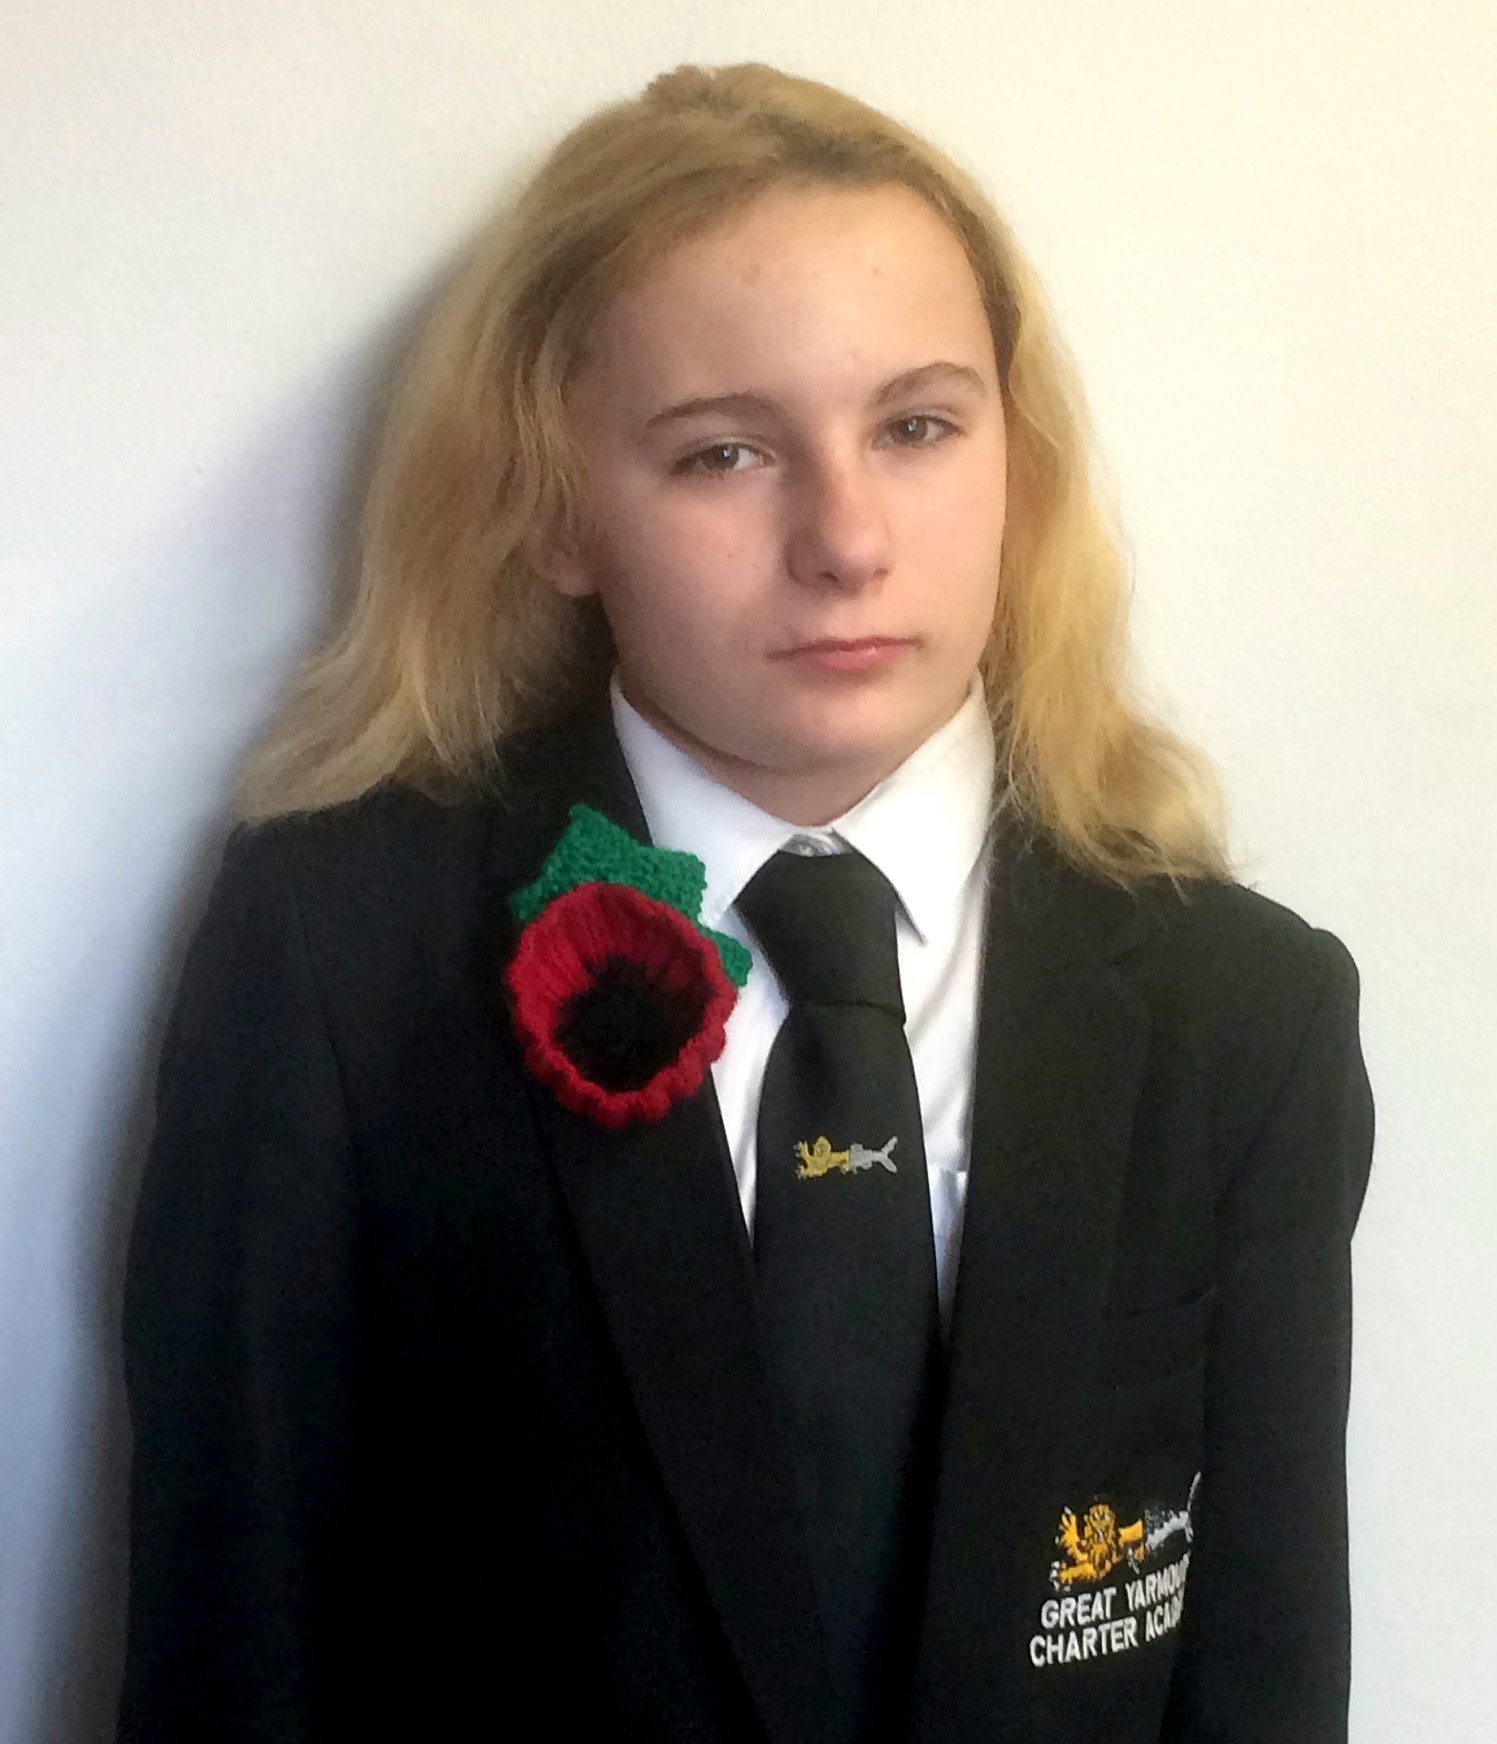 """Courtney Dougal,13, wearing the poppy she was banned from wearing at school- because it is TOO BIG!See SWNS story SWCApoppy.A teenager has been banned from wearing a knitted poppy to school - over claims it's too BIG. Courtney Dougal, 13, was told to remove the woollen symbol by teachers who said it was """"not appropriate"""" to be worn in class. The poppy is only 1cm larger than a paper version and was bought for her by her dad Raymond Dougal so she could wear it as a mark of respect for Britain's war dead. Raymond, 69, said: ?I am absolutely disgusted that they have made her take the poppy off. It doesn't make any sense."""